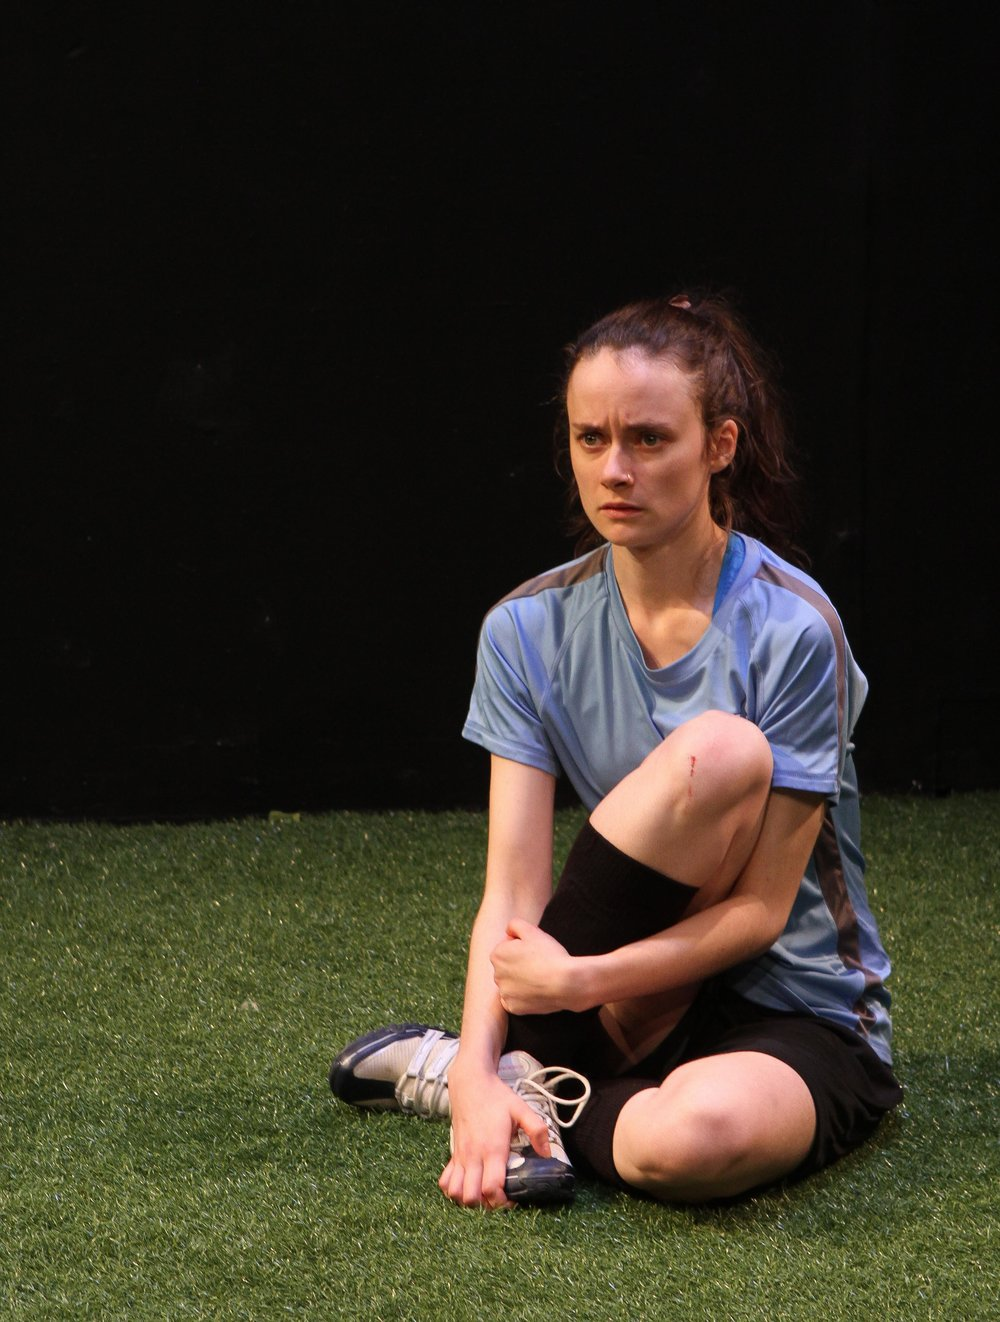 Production photos by: Ron Reed  Featuring: Paige Louter